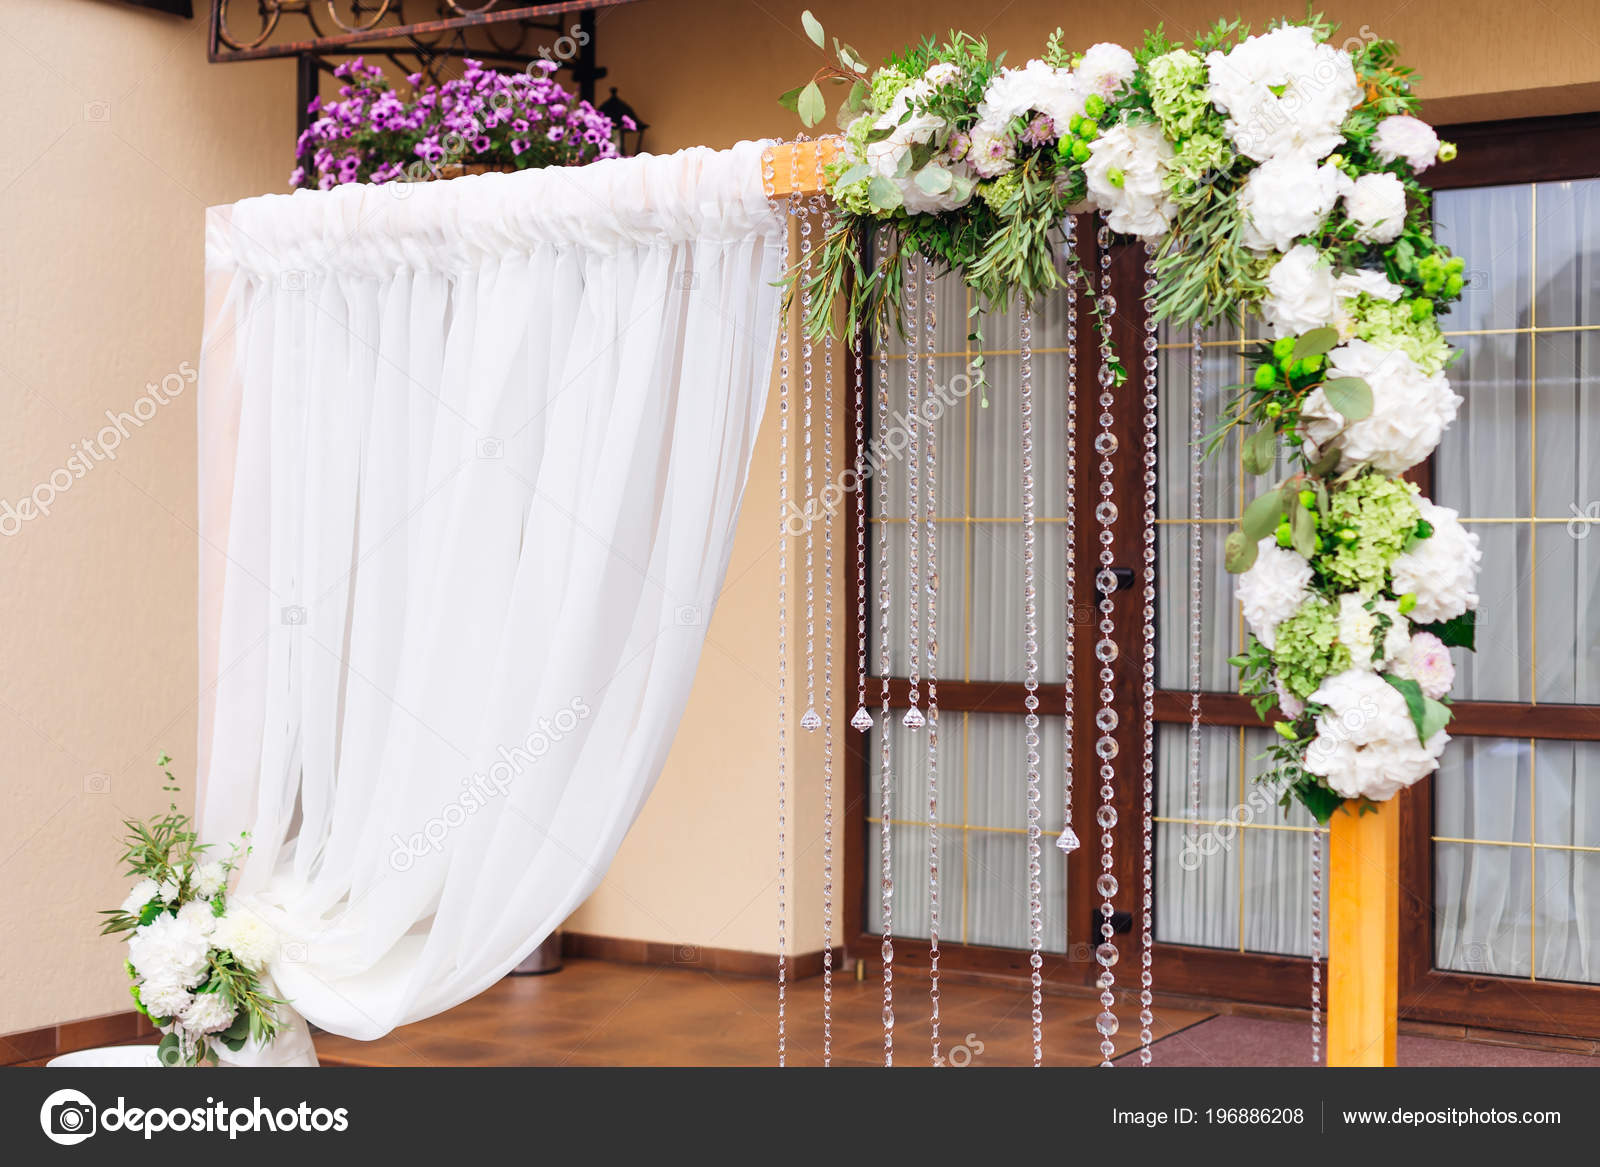 Wedding Reception Entrance Decoration Ideas Beautifully Decorated Visiting Ceremony Glass Doors Restaurant Wooden Arc Tulle Stock Photo C Ivankyryk 196886208